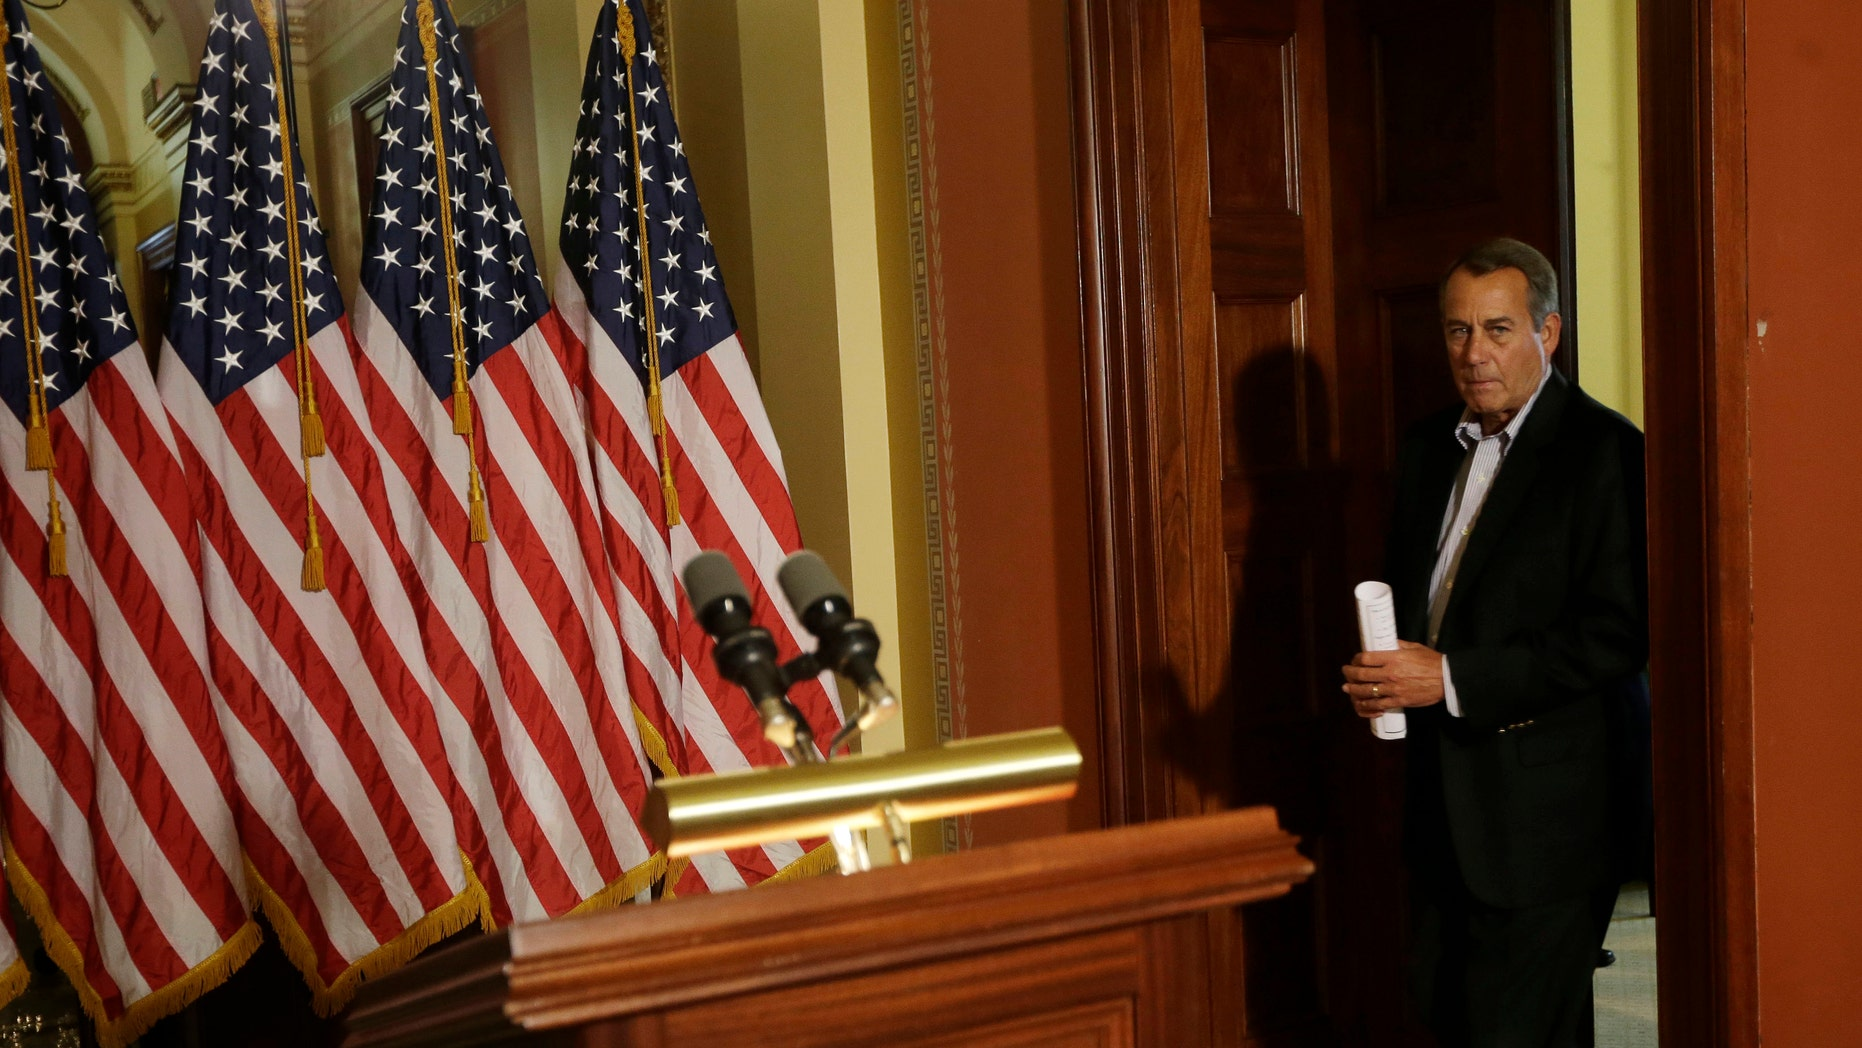 House Speaker John Boehner of Ohio arrives for a news conference on Capitol Hill in Washington, Friday, Dec. 7, 2012, to discuss the pending fiscal cliff.  Boehner said there's been no progress in negotiations on how to avoid the fiscal cliff of tax hikes and spending cuts and called on President Barack Obama to come up with a new offer.  (AP Photo/Pablo Martinez Monsivais)